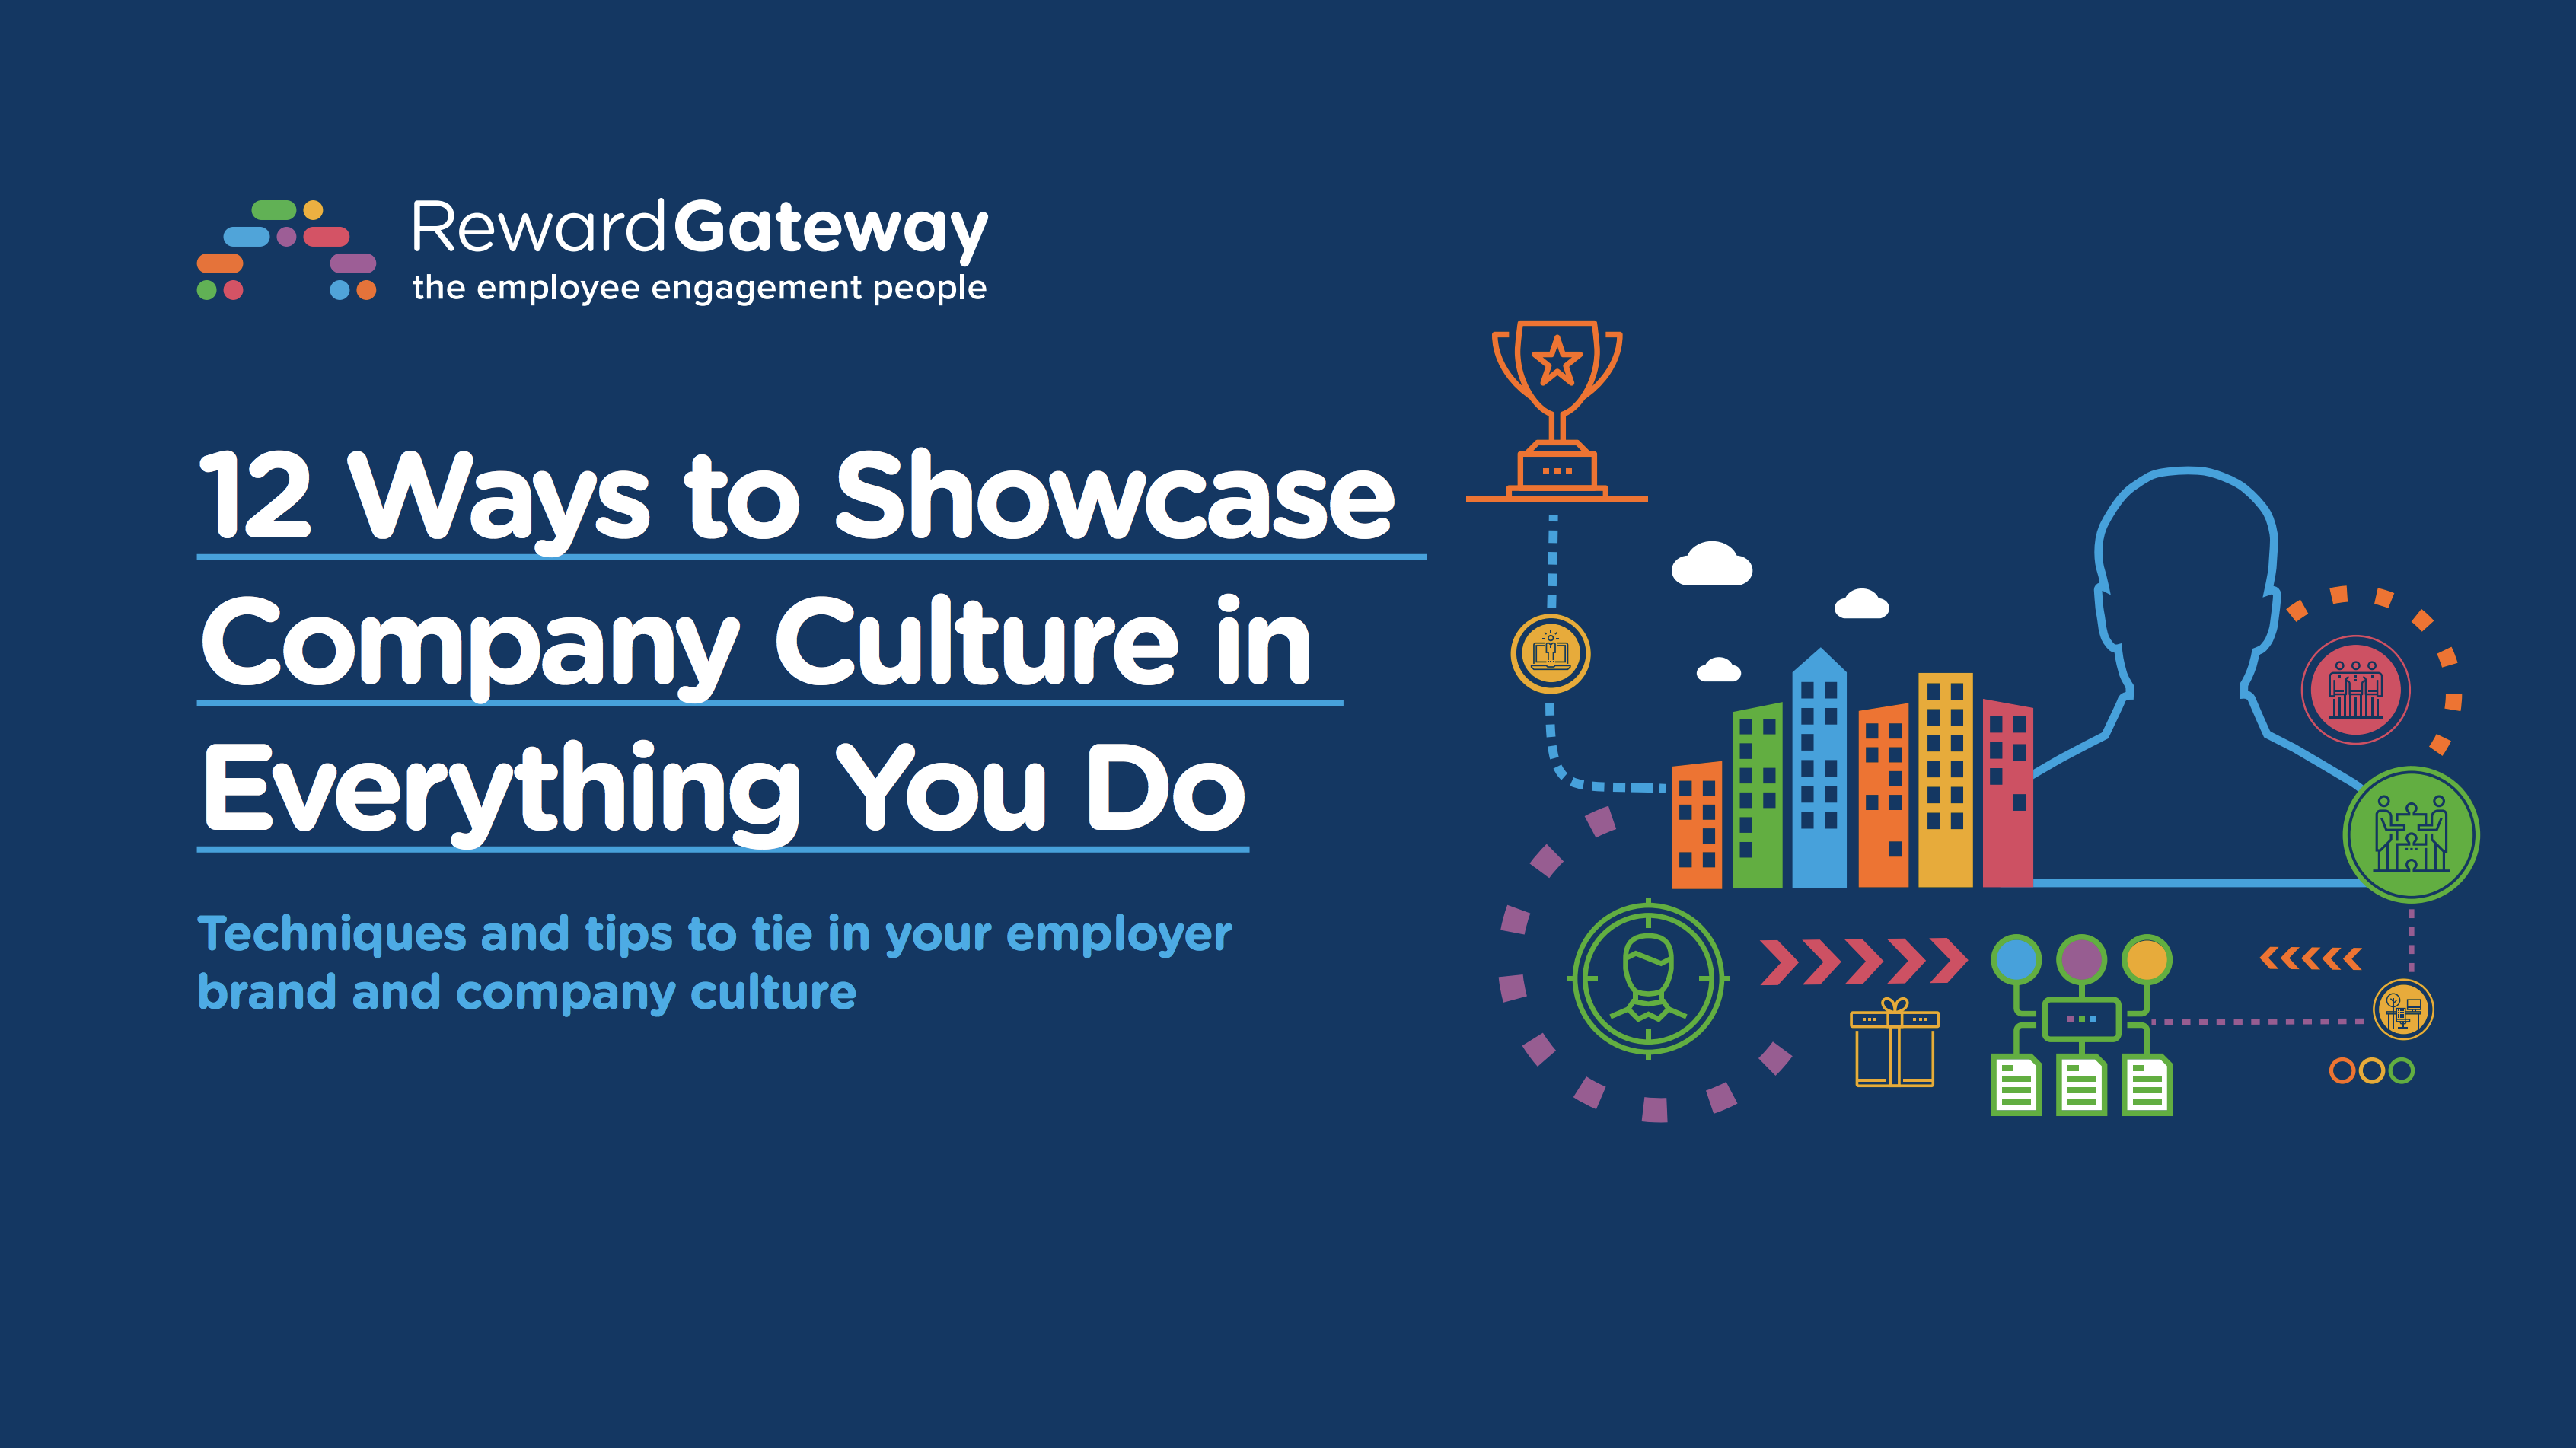 Improve employee value proposition by showcasing culture